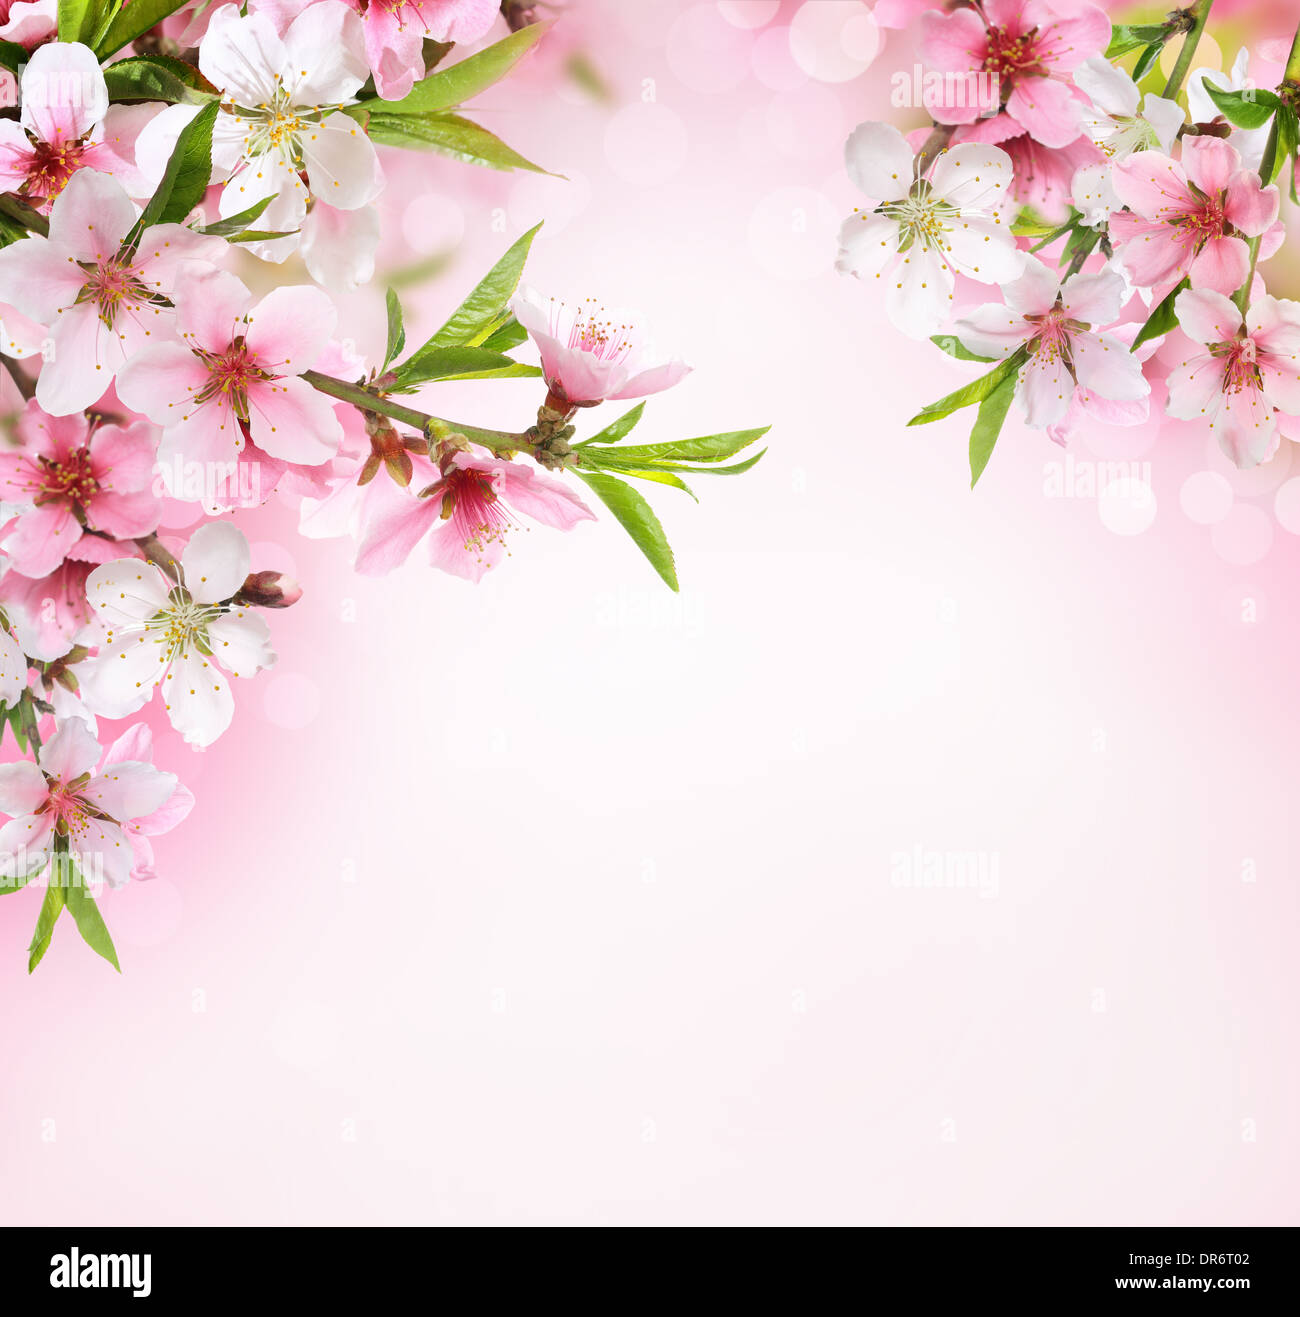 peach flower blossom on pink background stock photo alamy https www alamy com peach flower blossom on pink background image65918722 html